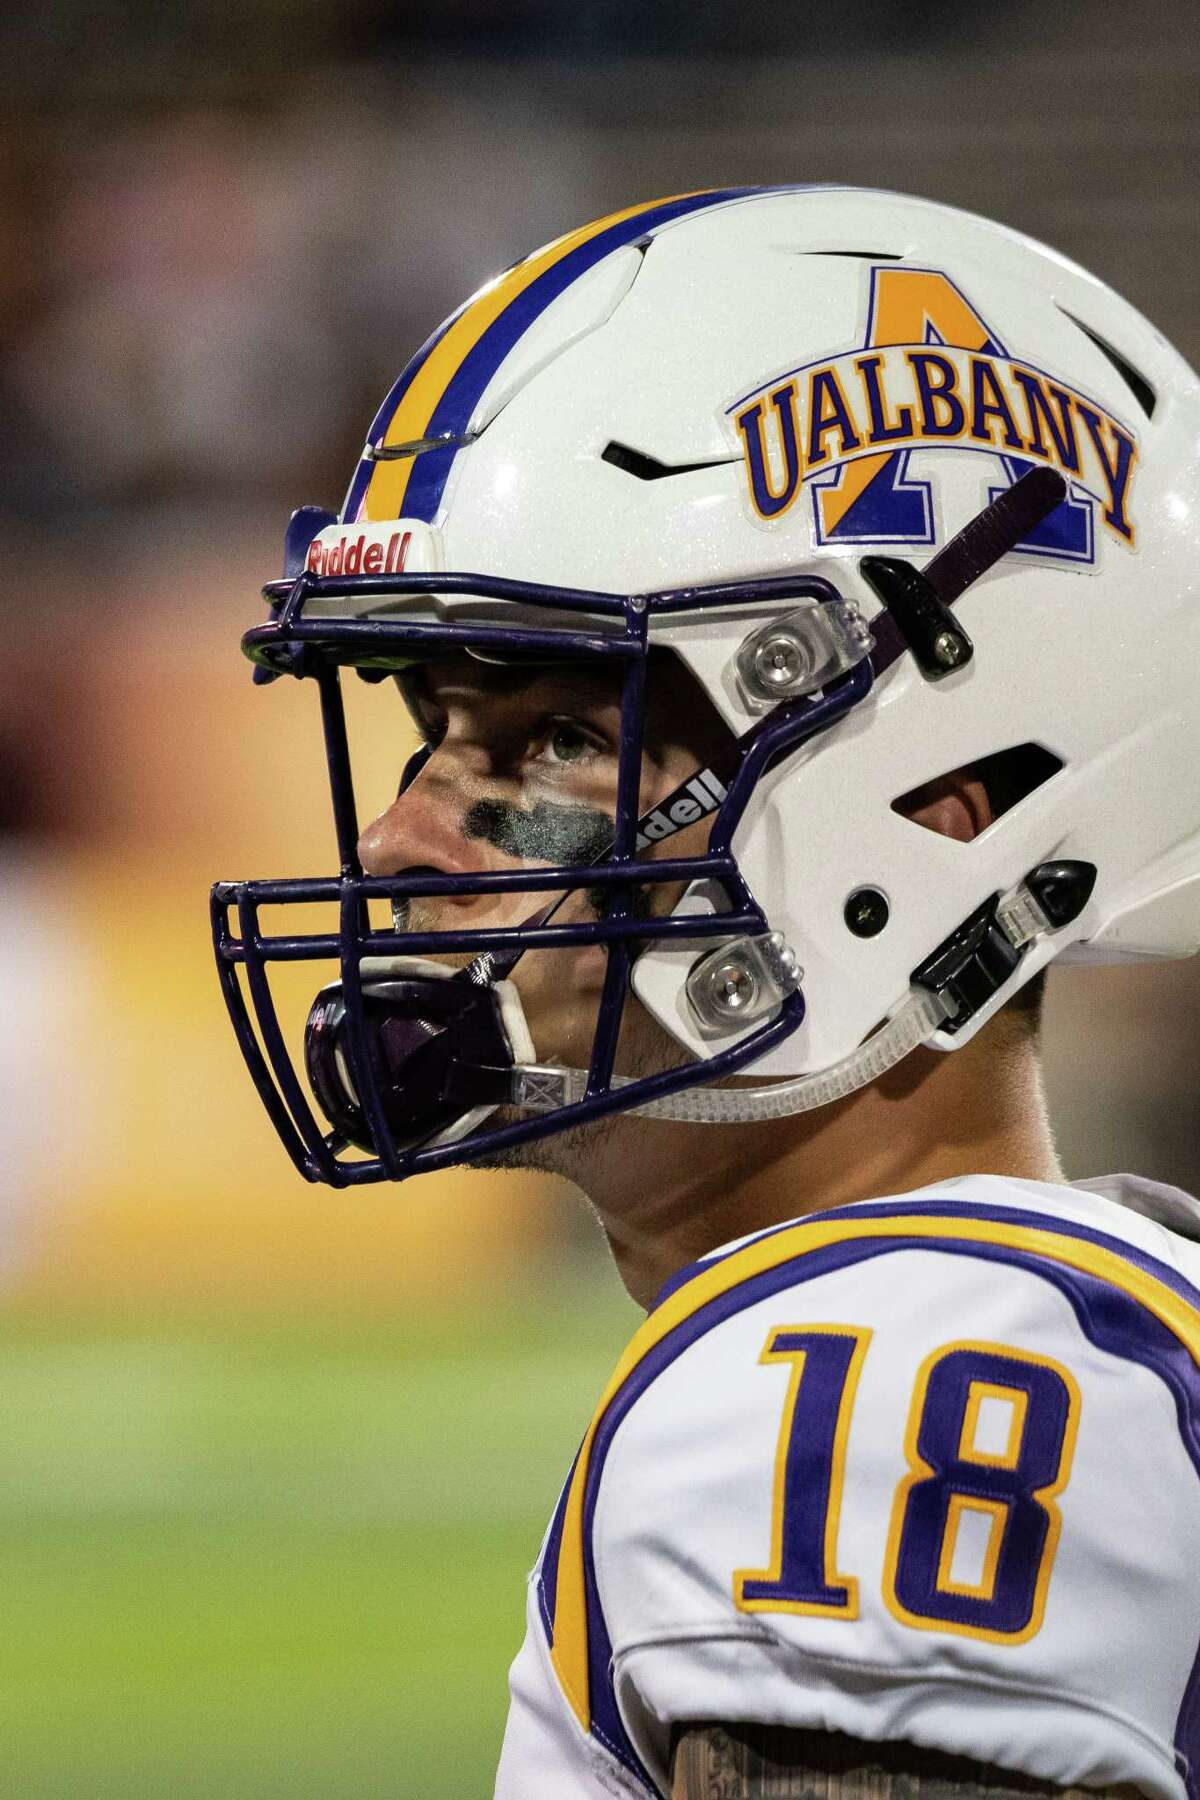 UAlbany quarterback Jeff Undercuffler, during the Danes' season opener against Central Michigan on Thursday, Aug. 29, 2019. (Isaac Ritchey / Special to the Times Union)